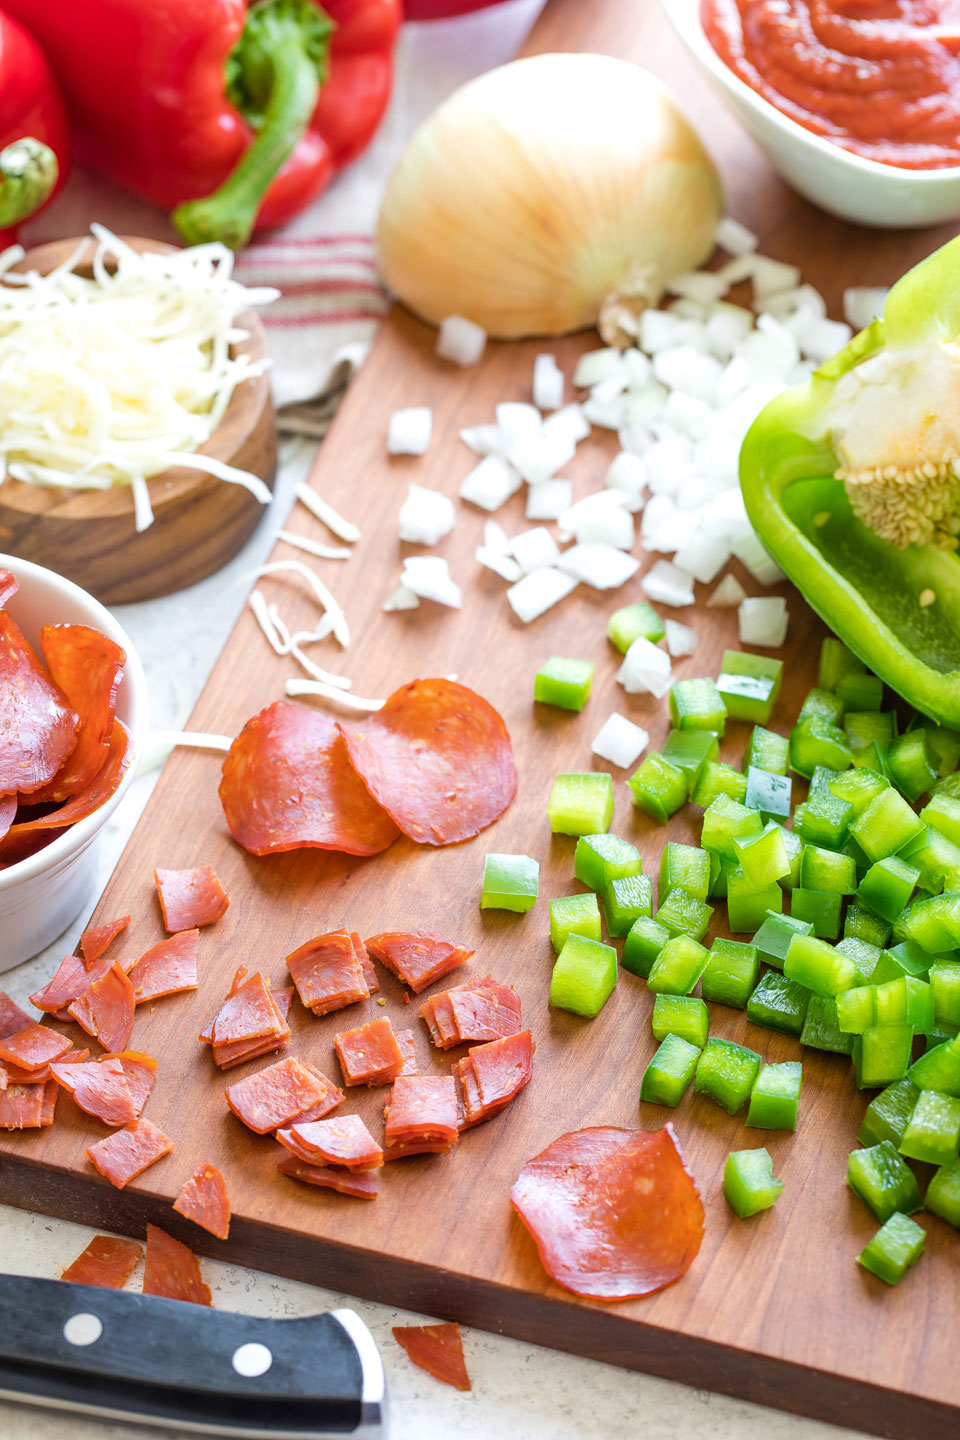 Cutting board surrounded by ingredients and covered in diced peppers, onions and pepperoni.